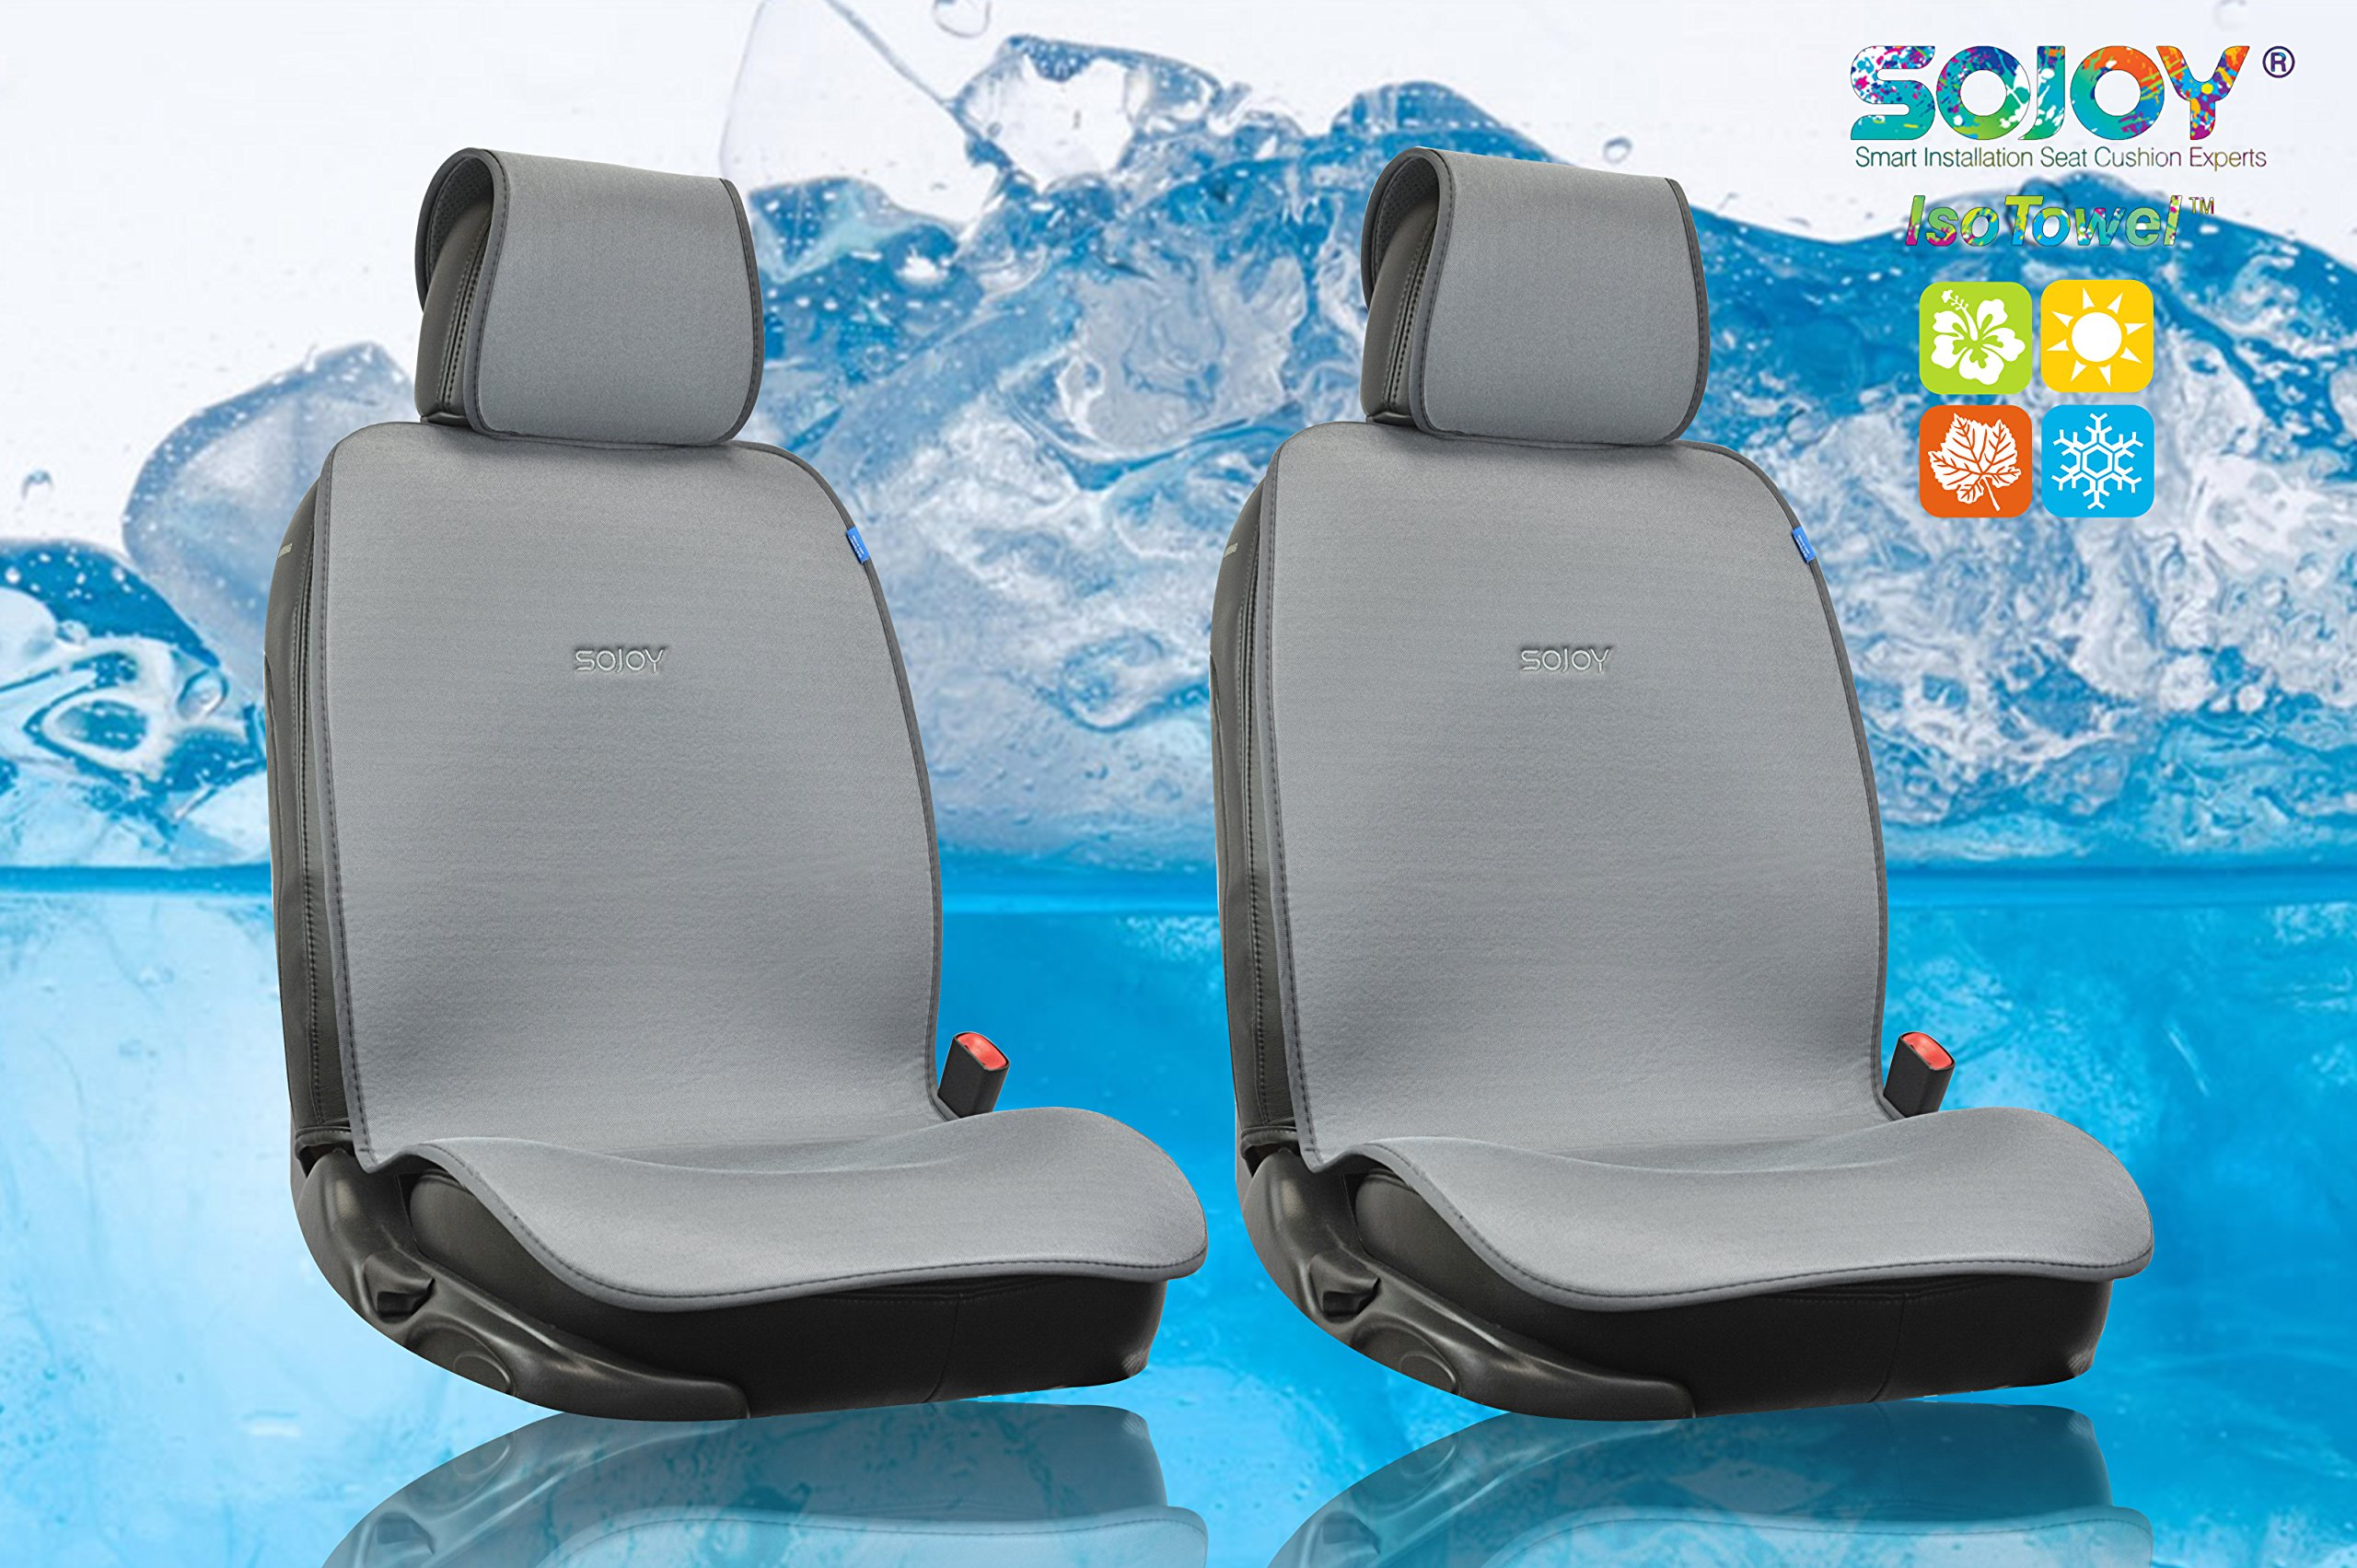 Sojoy Cooling Summer Large Car Seat Cover 2 Seats with 4 Pieces (Gray Large 43.5x22 inch)